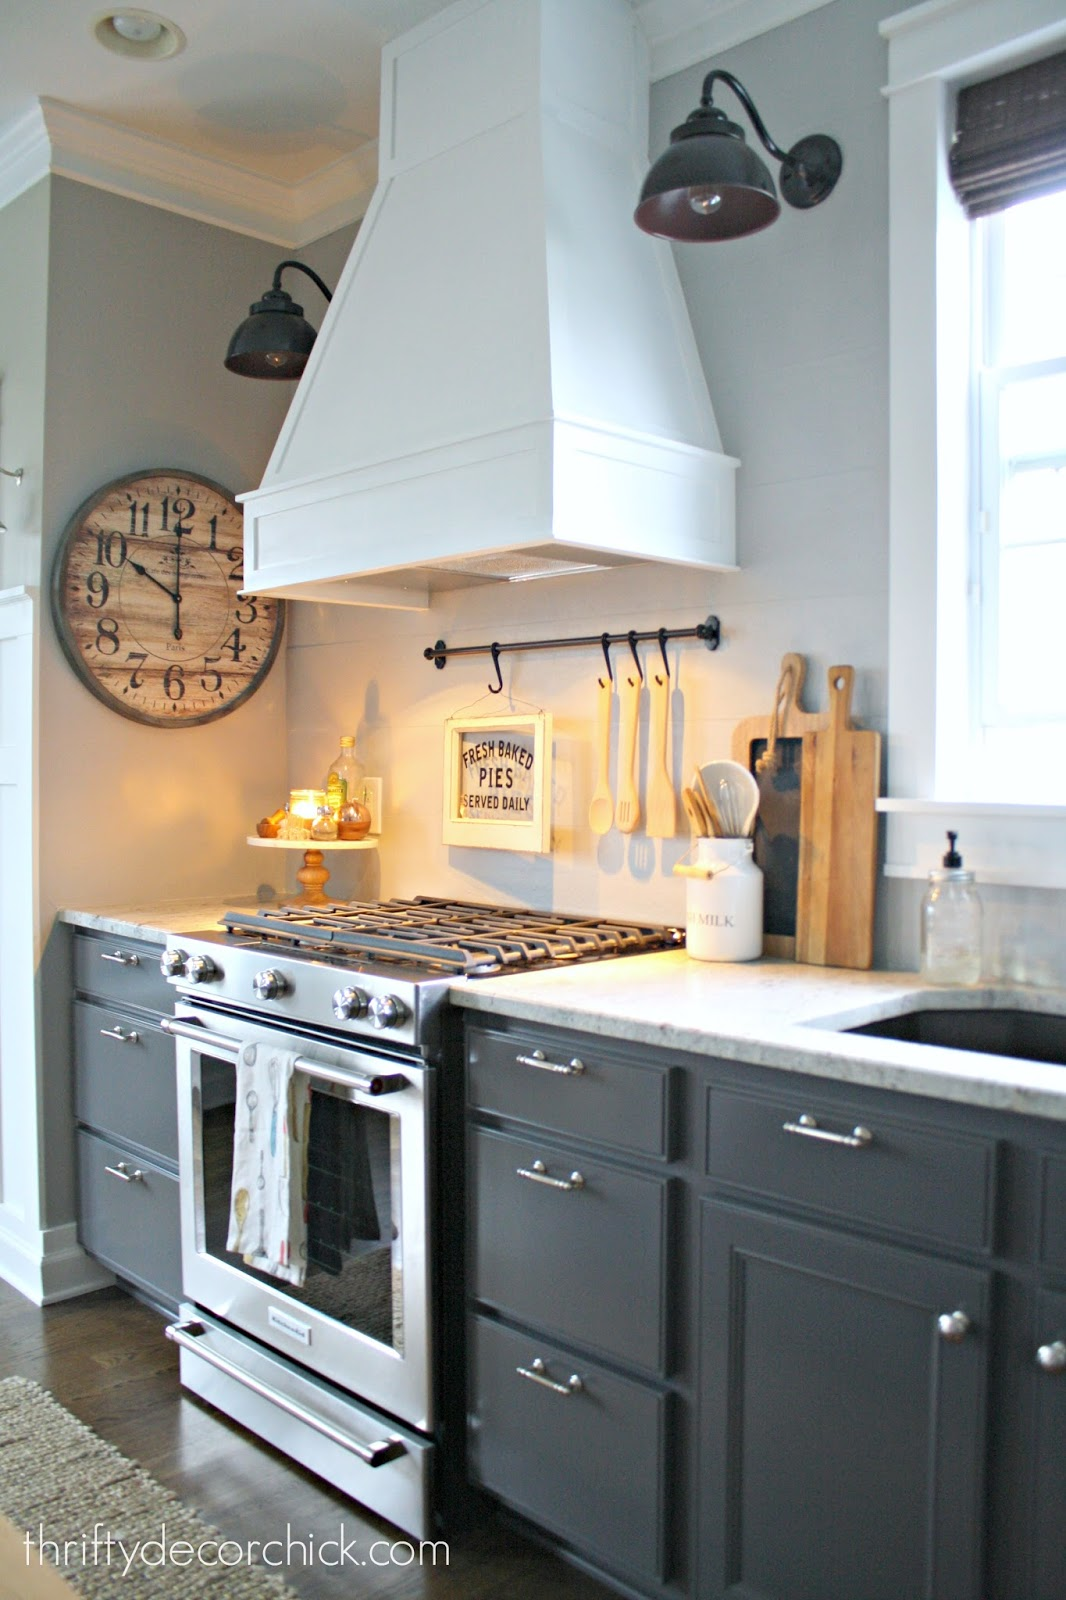 Kitchen DIYs, Details and Sources! from Thrifty Decor Chick